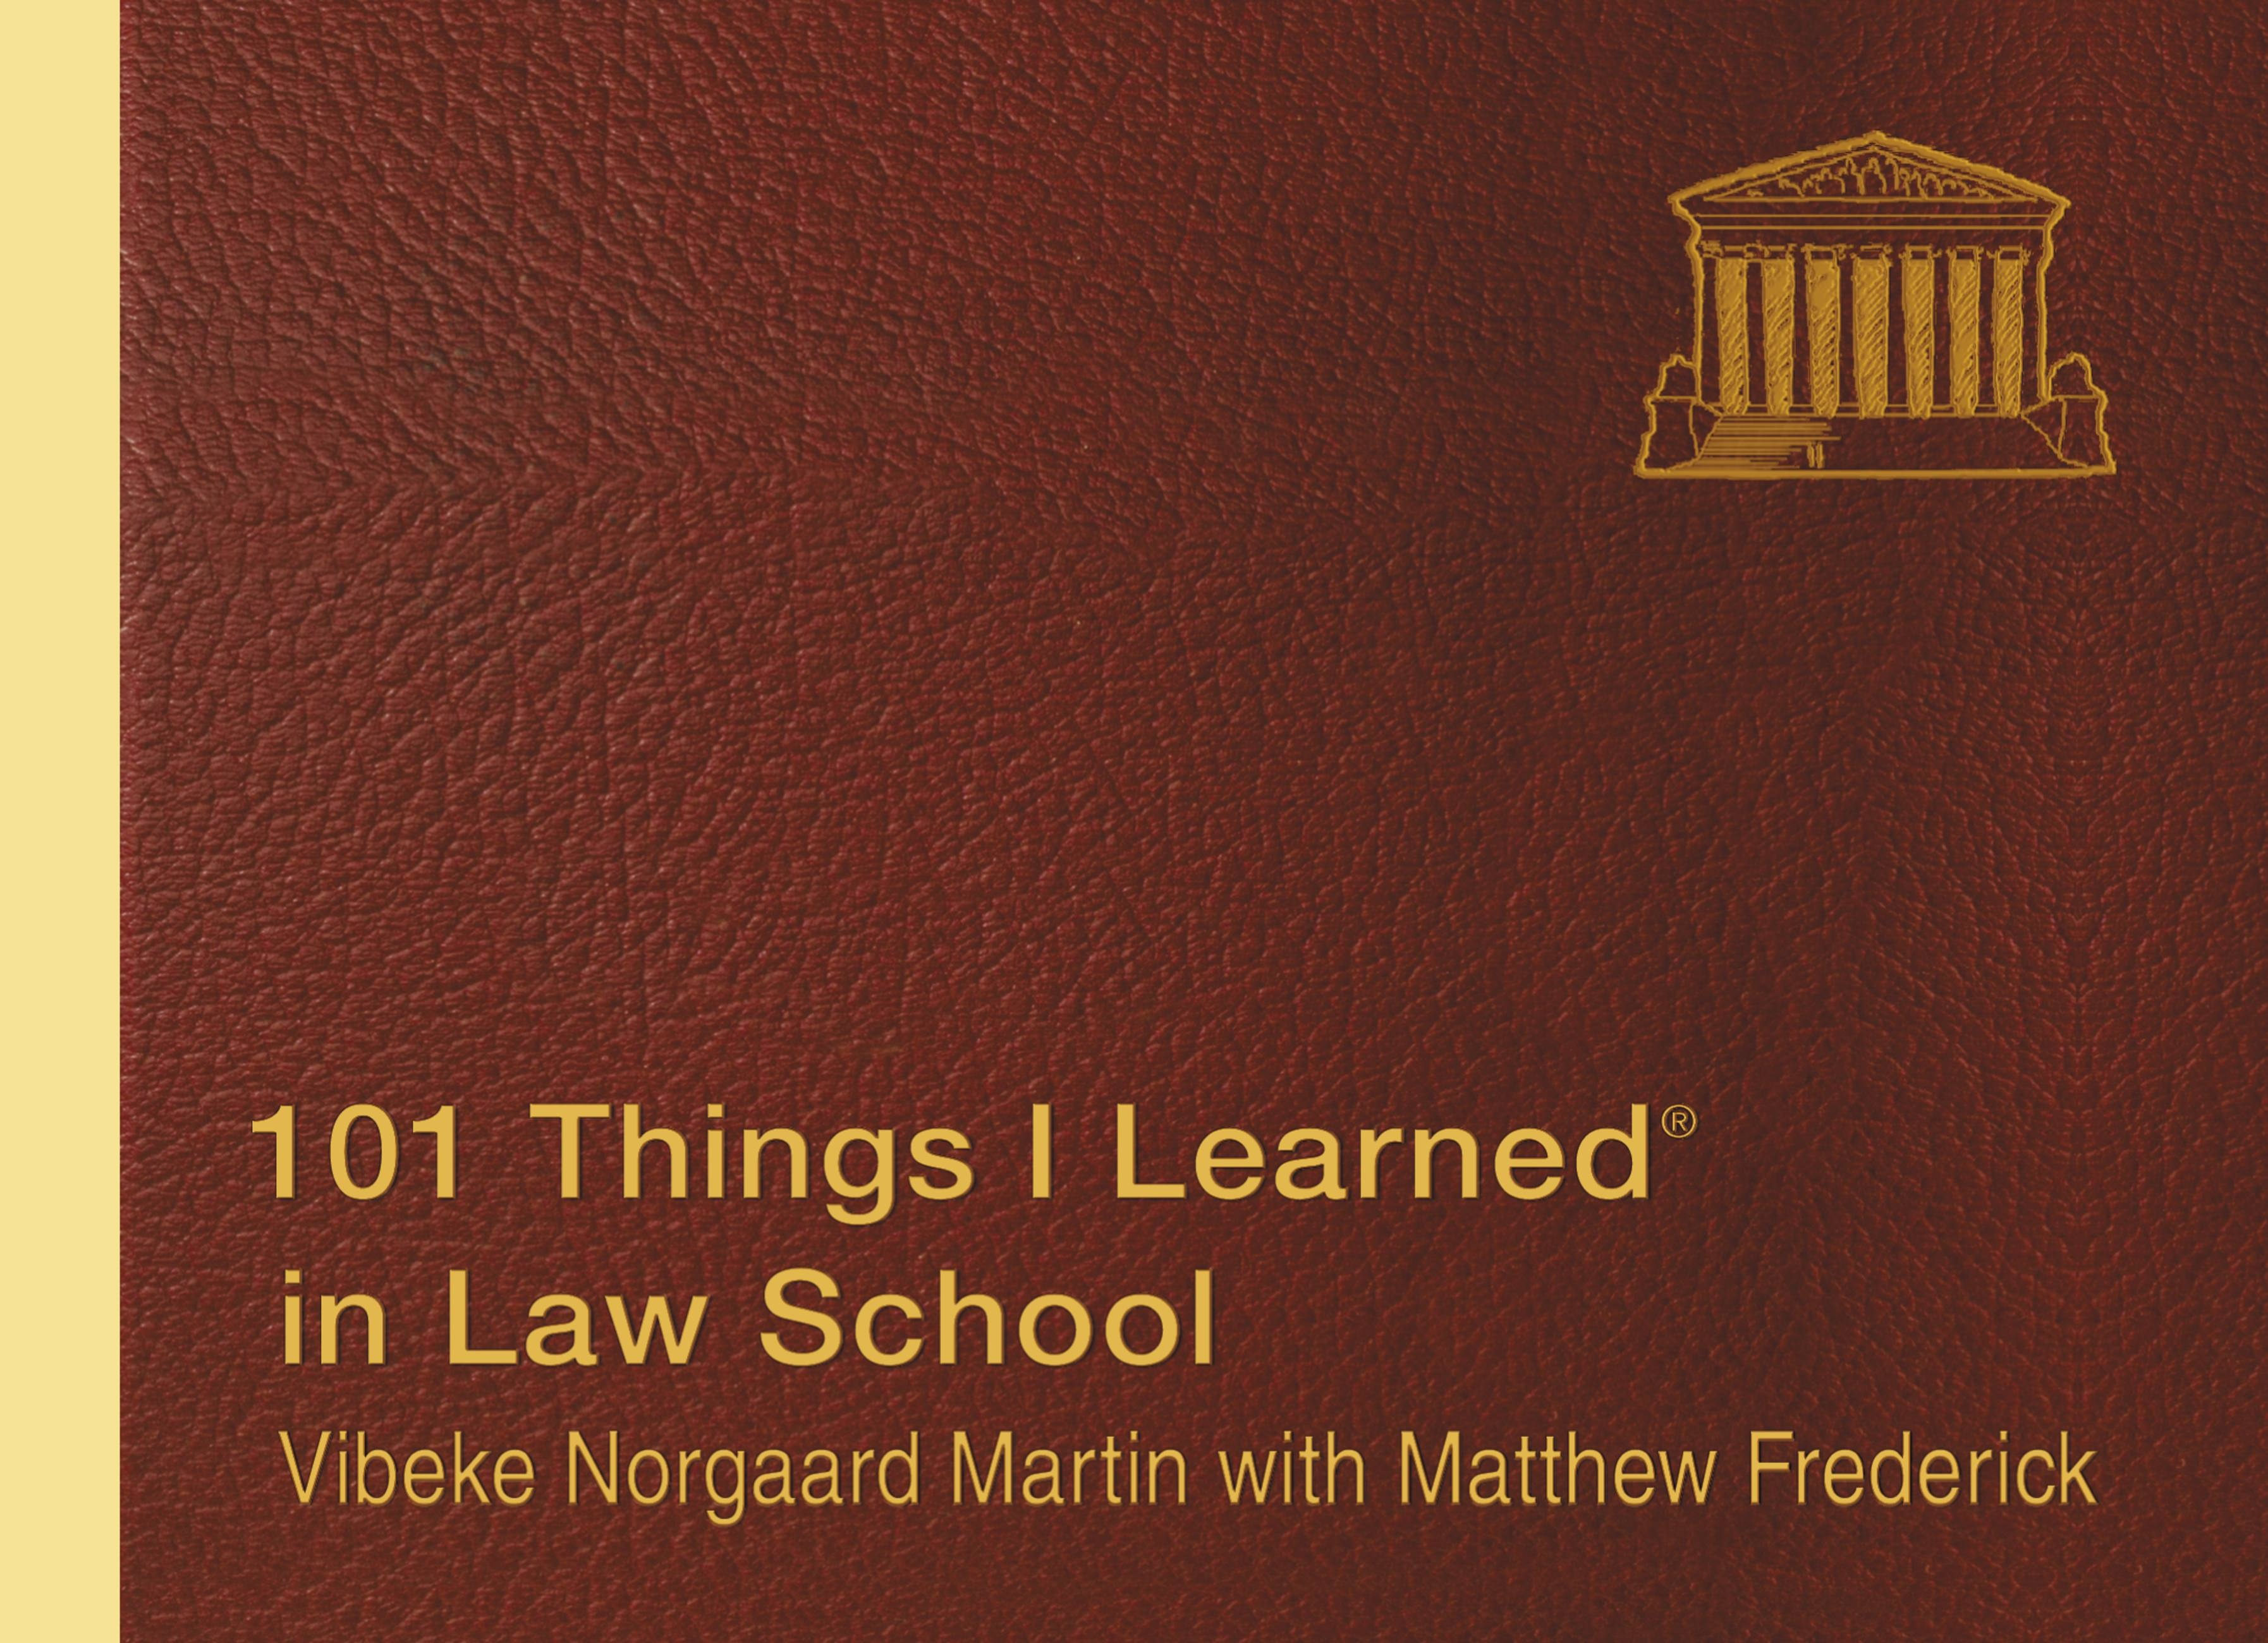 101 Things I Learned ® in Law School